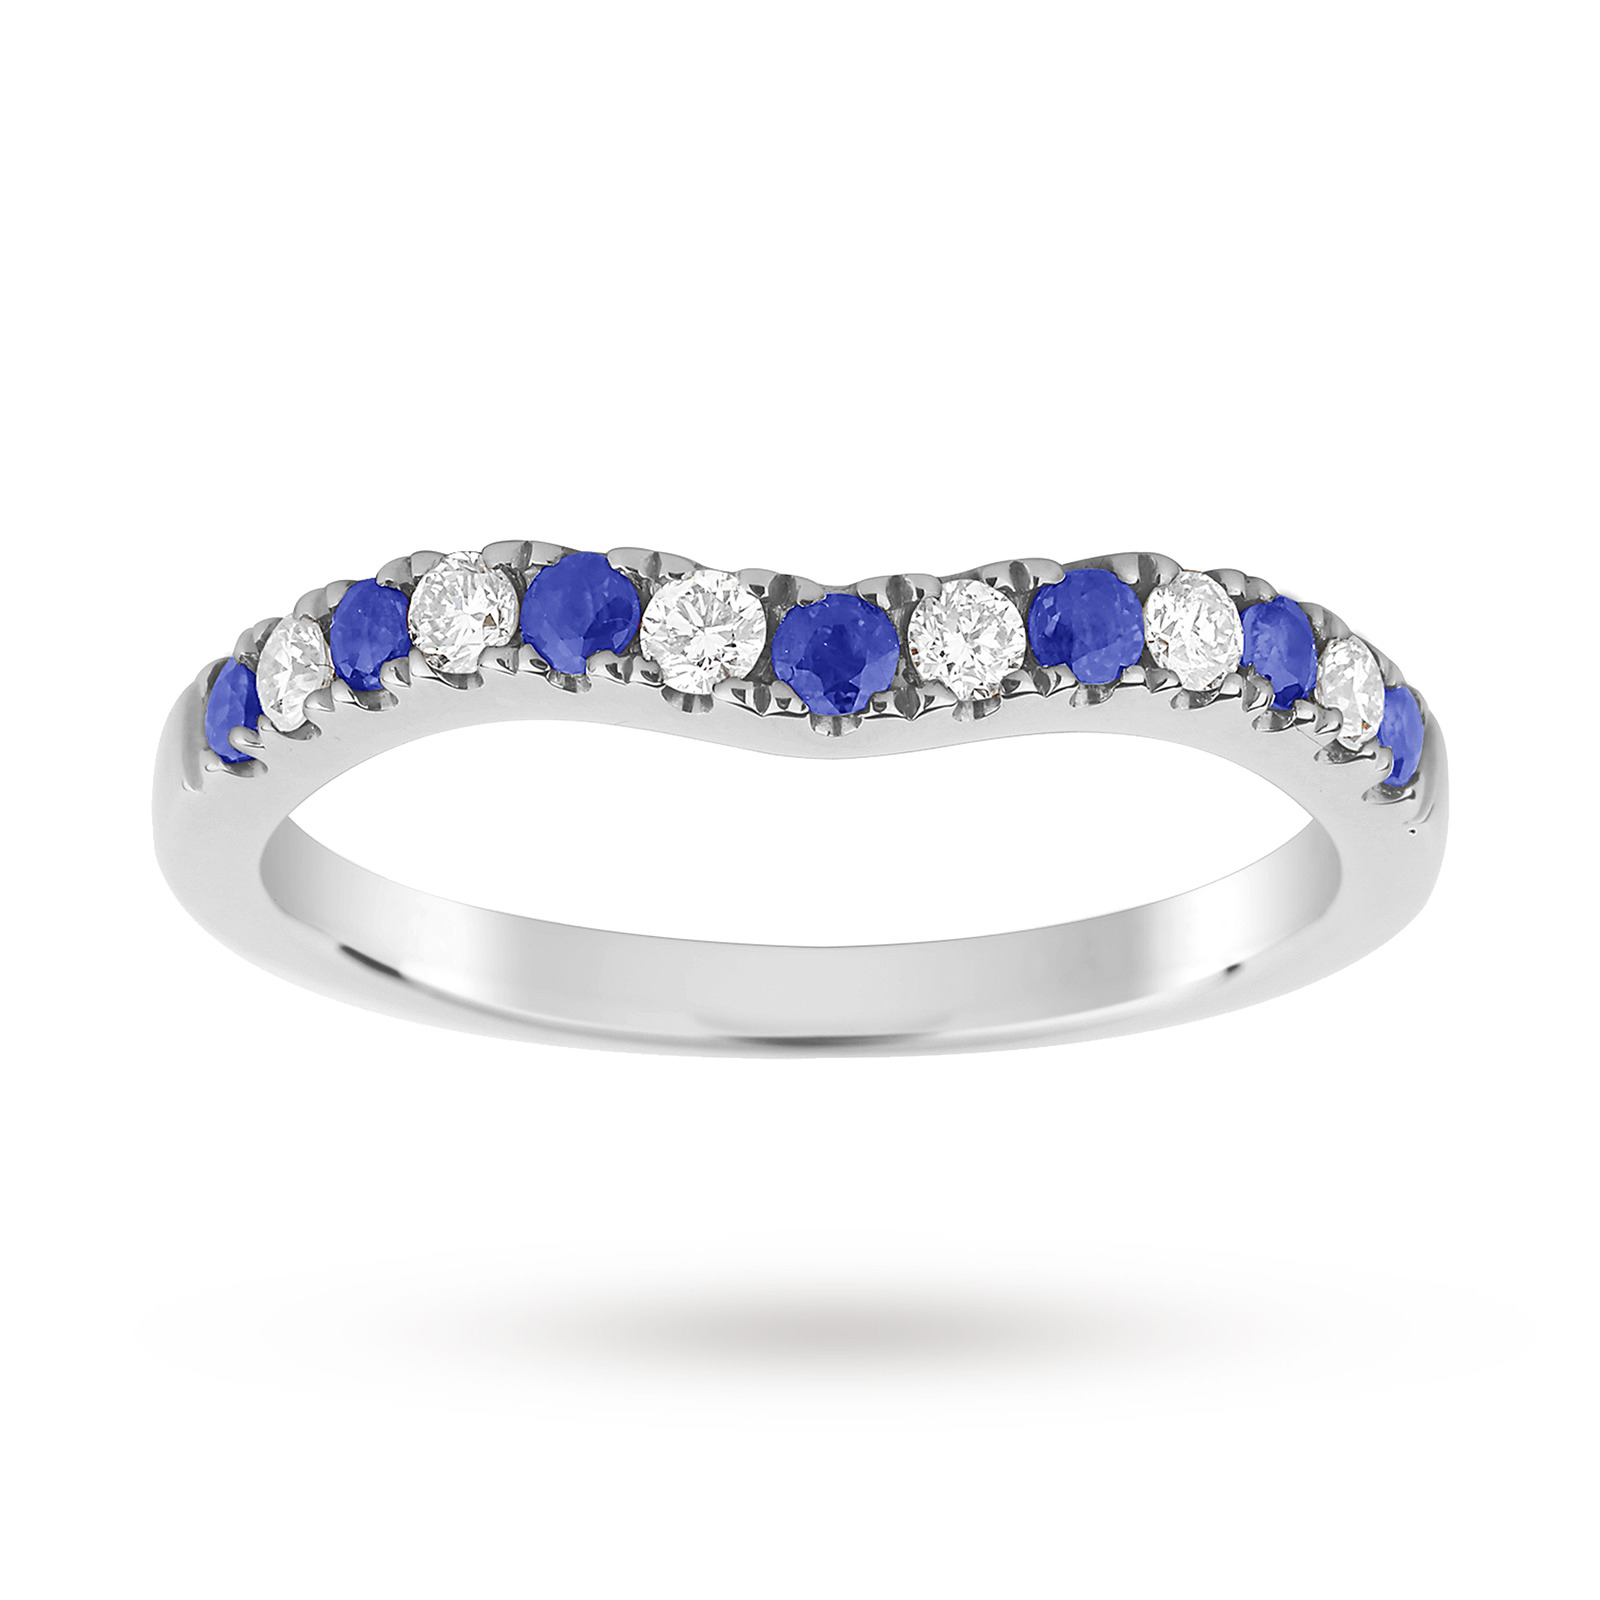 9ct White Gold Sapphire and 0.18 Total Carat Weight Diamond Shaped Wedding Ring